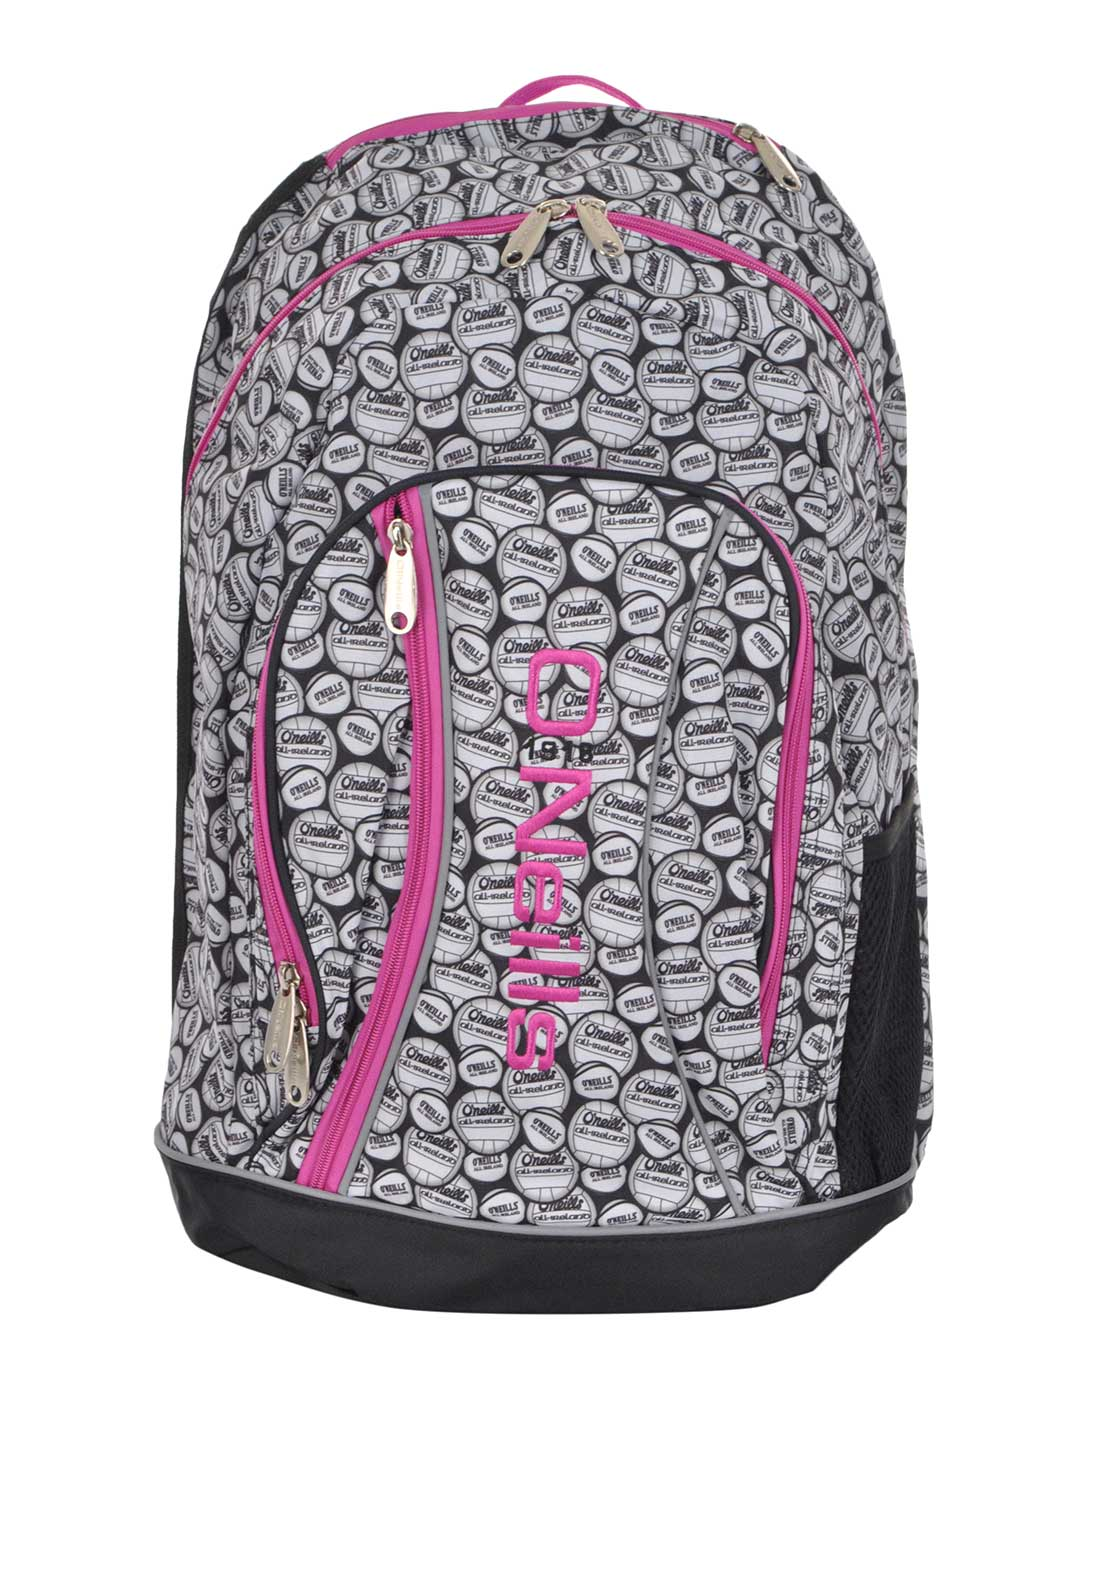 O'Neill's Printed Balls Marley Back Pack School Bag, Black and Pink